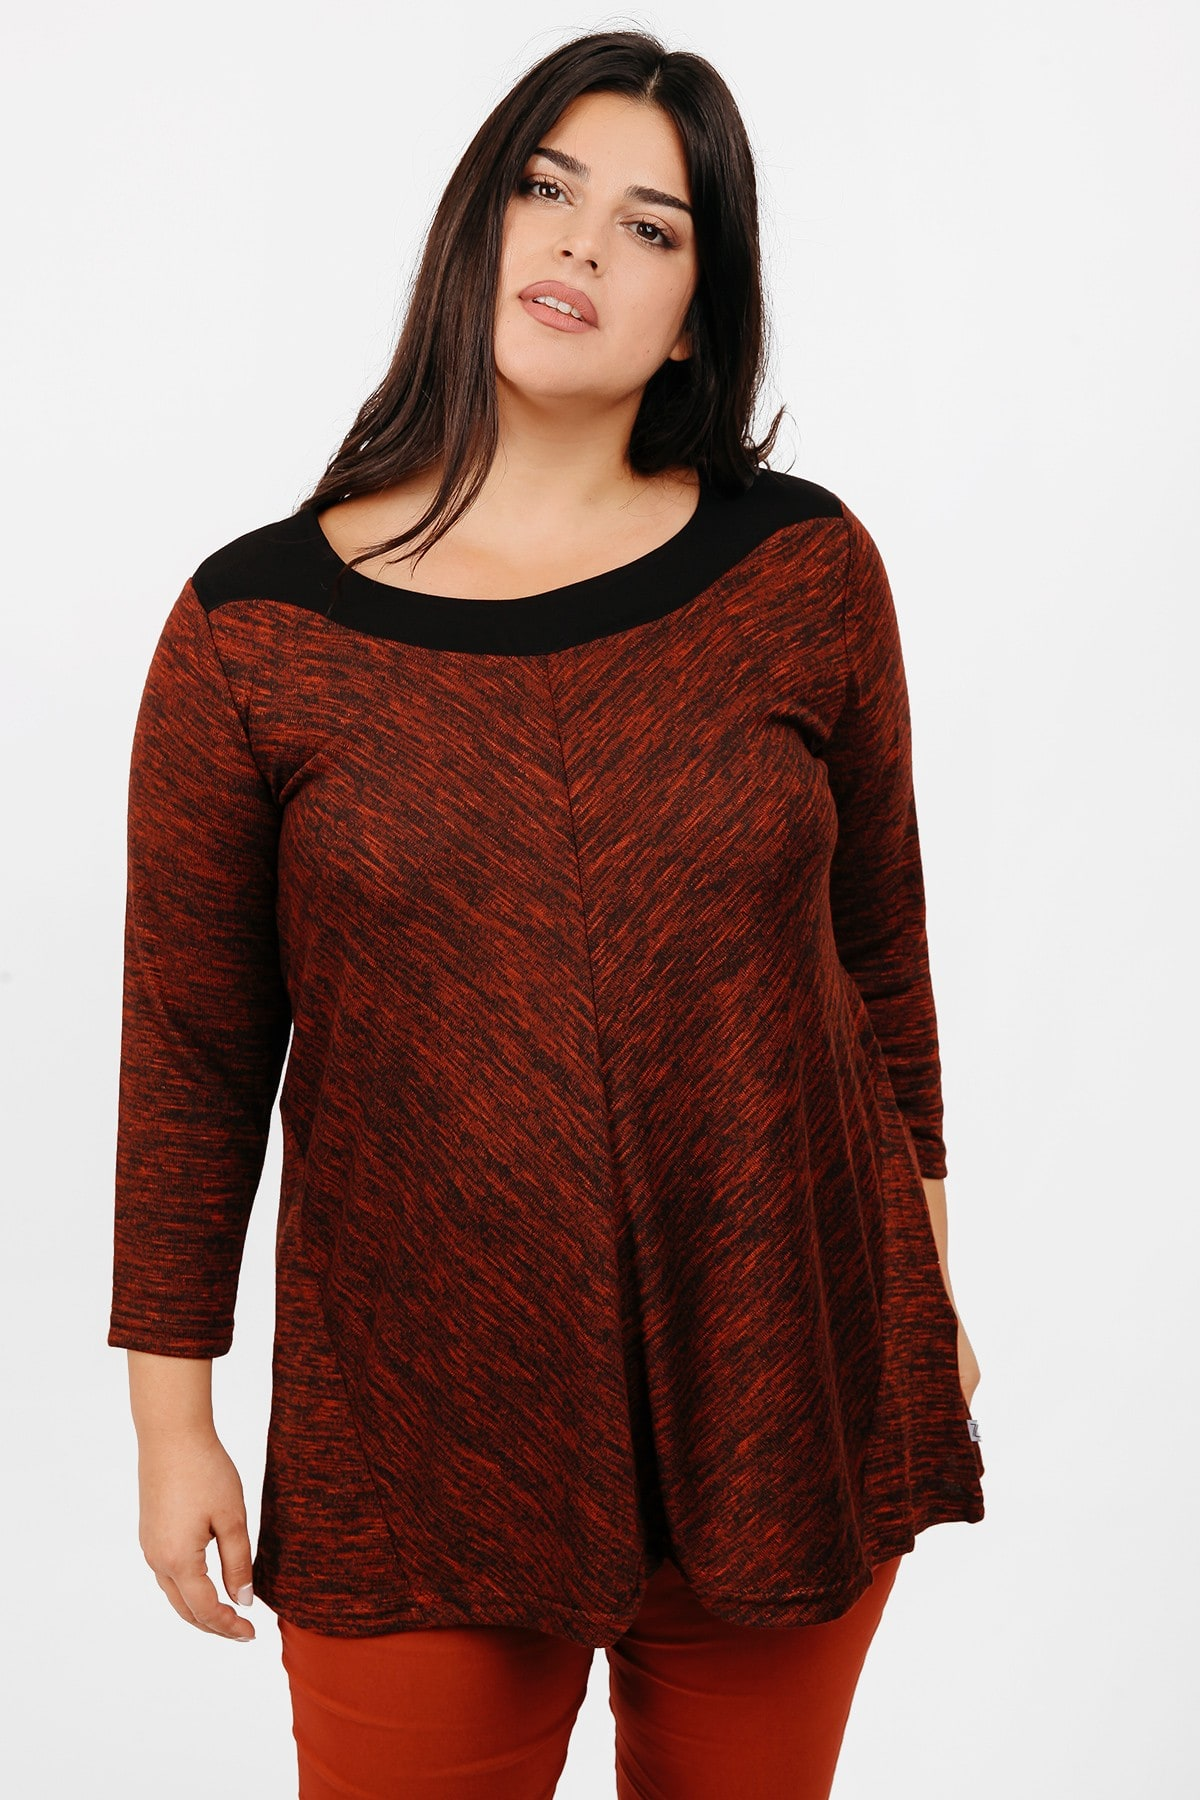 Melange blouse and 3/4 sleeves